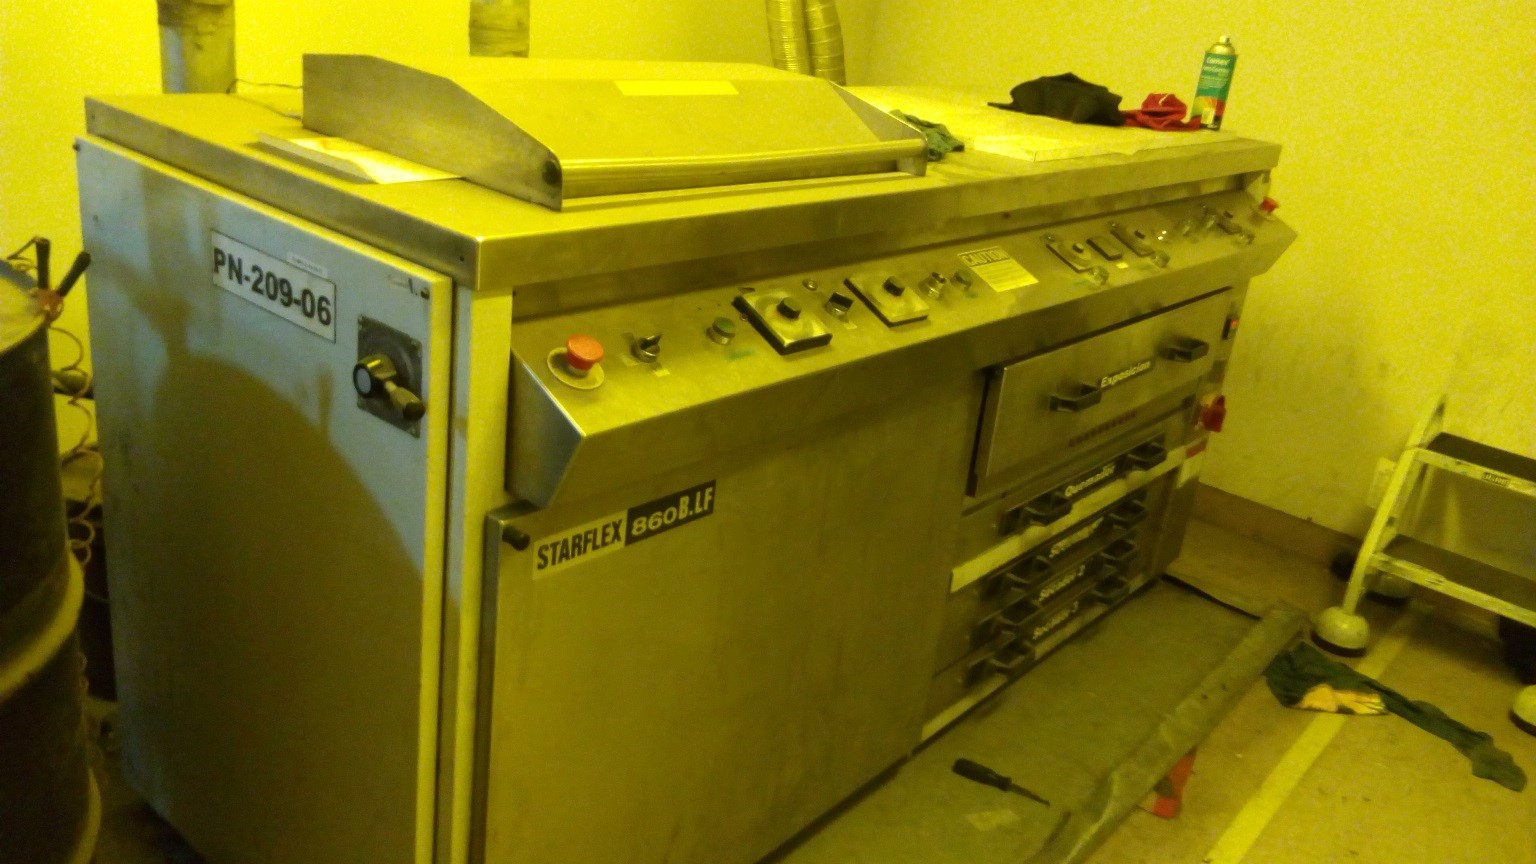 Propheteer 1800 - Used Flexo Printing Presses and Used Flexographic Equipment-13